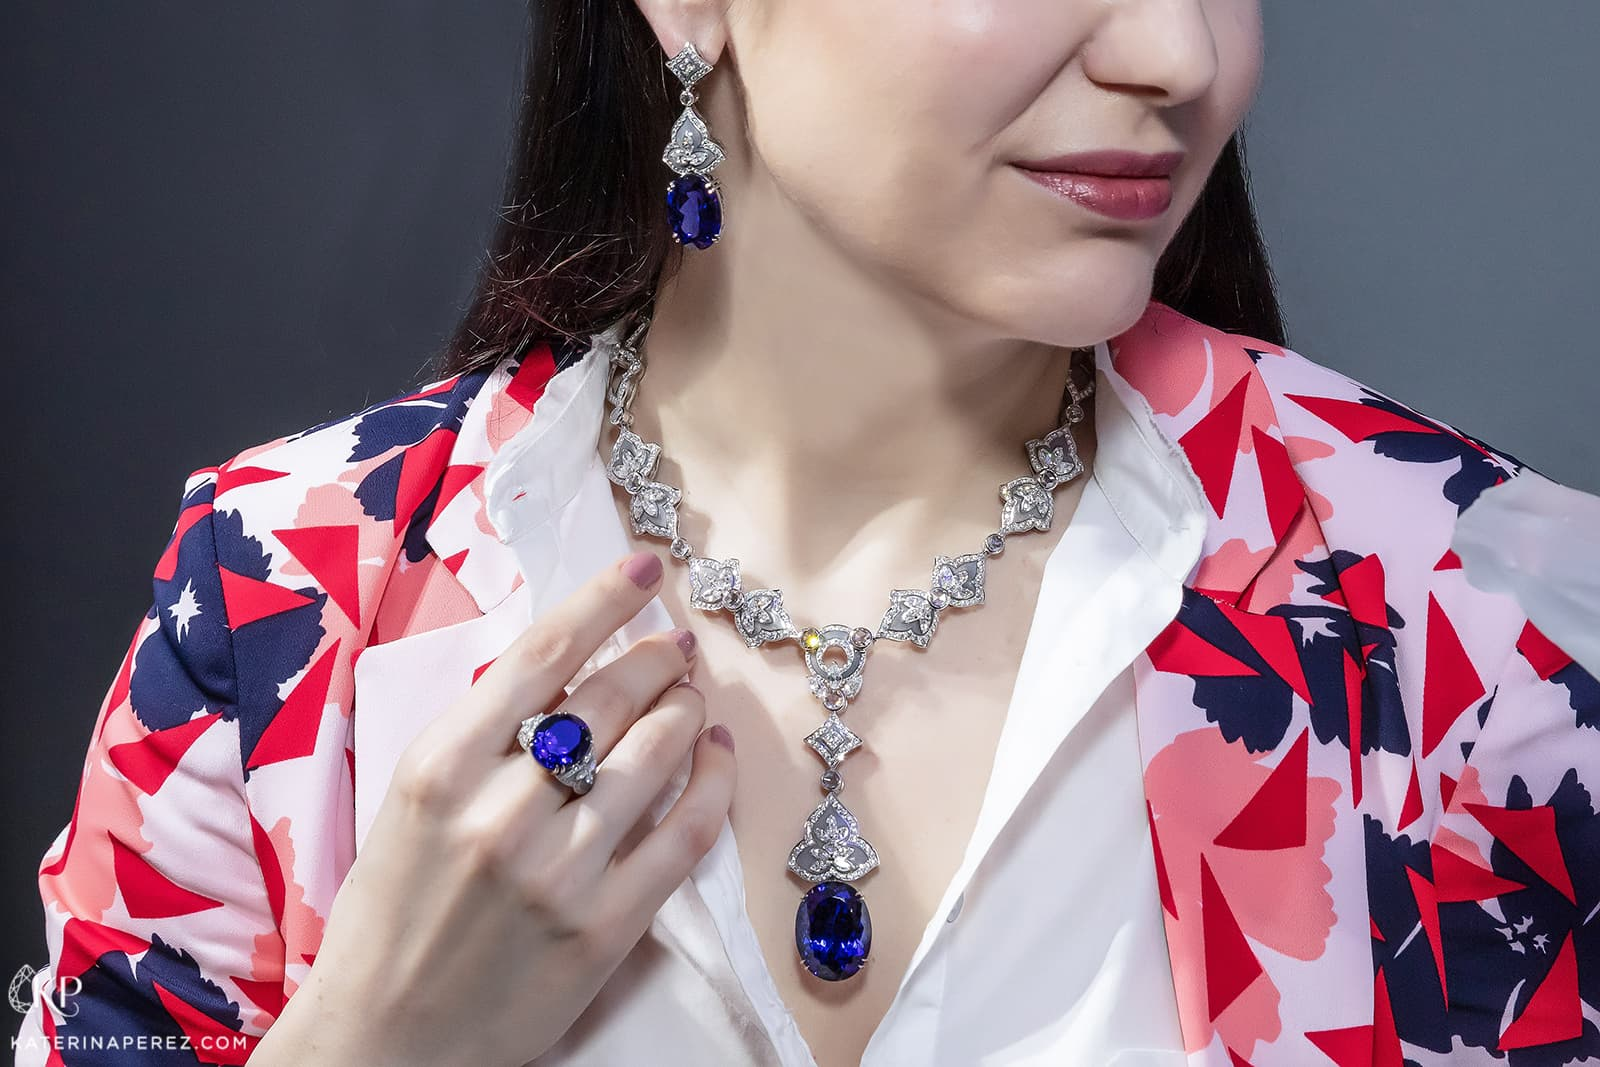 Henn of London necklace with 61.11ct tanzanite, earrings with 48.83ct tanzanite, ring with 18.27ct tanzanite, all with diamonds and enamel in white gold